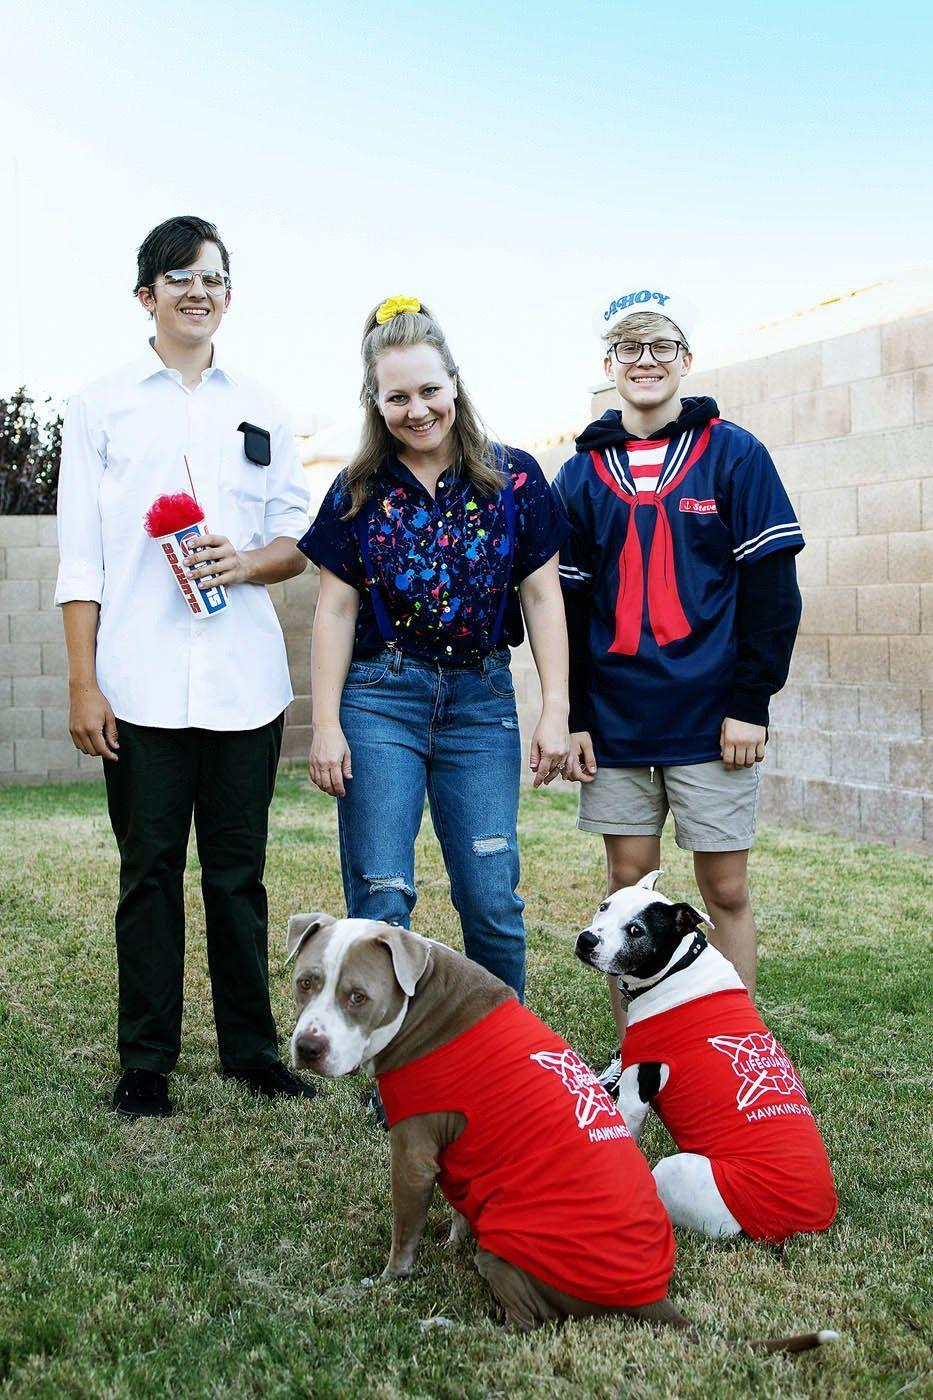 """<p>Here are clever costumes you can wear as a family that depict characters from the latest season of <em>Stranger Things.</em> Mom is donning Eleven's '80s-perfect outfit, the boys are dressed as Russian scientist Alexei and Steve in his Scoops Ahoy uniform—even the dogs got in on the fun in their Hawkins lifeguard T-shirts. </p><p><strong>Get the tutorial at <a href=""""https://allfortheboys.com/diy-stranger-things-3-family-costume-ideas/"""" rel=""""nofollow noopener"""" target=""""_blank"""" data-ylk=""""slk:All for the Boys"""" class=""""link rapid-noclick-resp"""">All for the Boys</a>. </strong></p><p><a class=""""link rapid-noclick-resp"""" href=""""https://www.amazon.com/Magicfly-Acrylic-Paint-Set-Multi-Surface/dp/B07P9Y1DJ8/?tag=syn-yahoo-20&ascsubtag=%5Bartid%7C10050.g.29398849%5Bsrc%7Cyahoo-us"""" rel=""""nofollow noopener"""" target=""""_blank"""" data-ylk=""""slk:SHOP ACRYLIC PAINT"""">SHOP ACRYLIC PAINT</a></p>"""